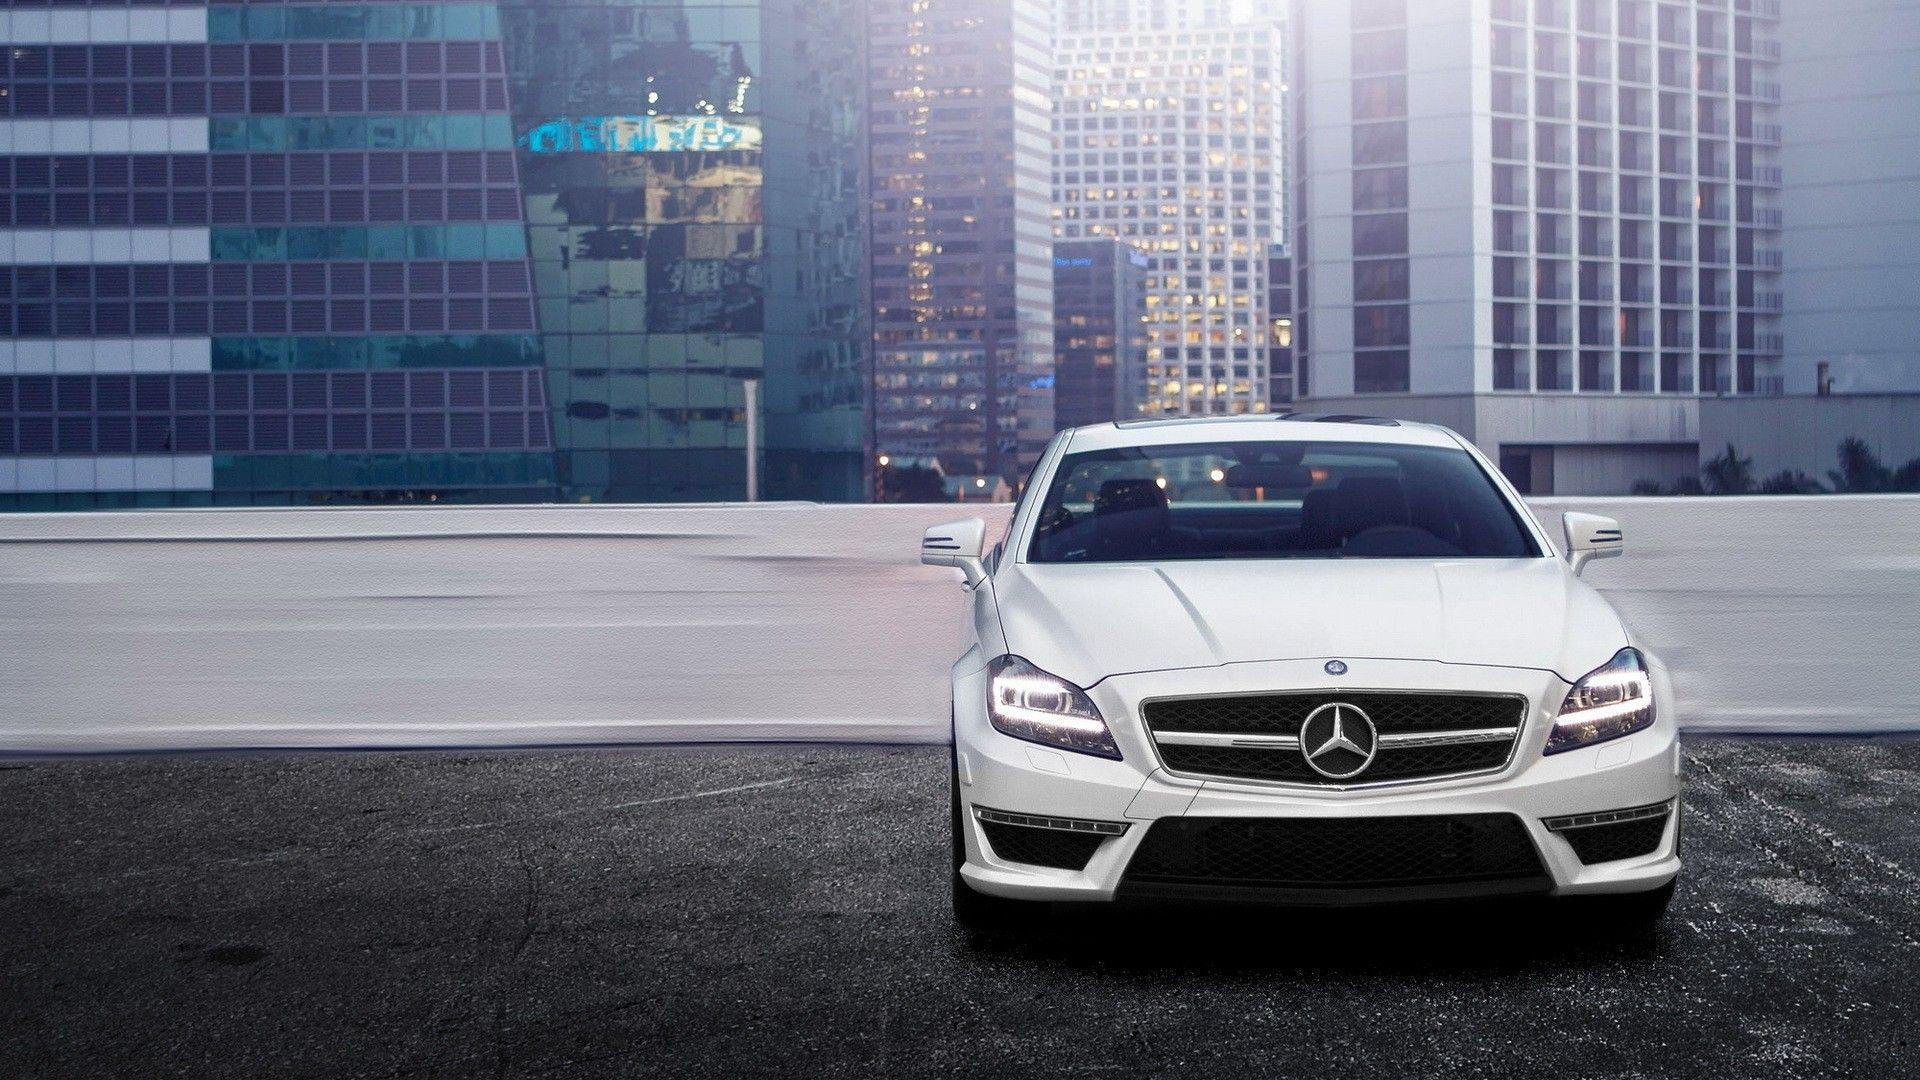 Full HD Mercedes Benz Wallpapers Wallpapers